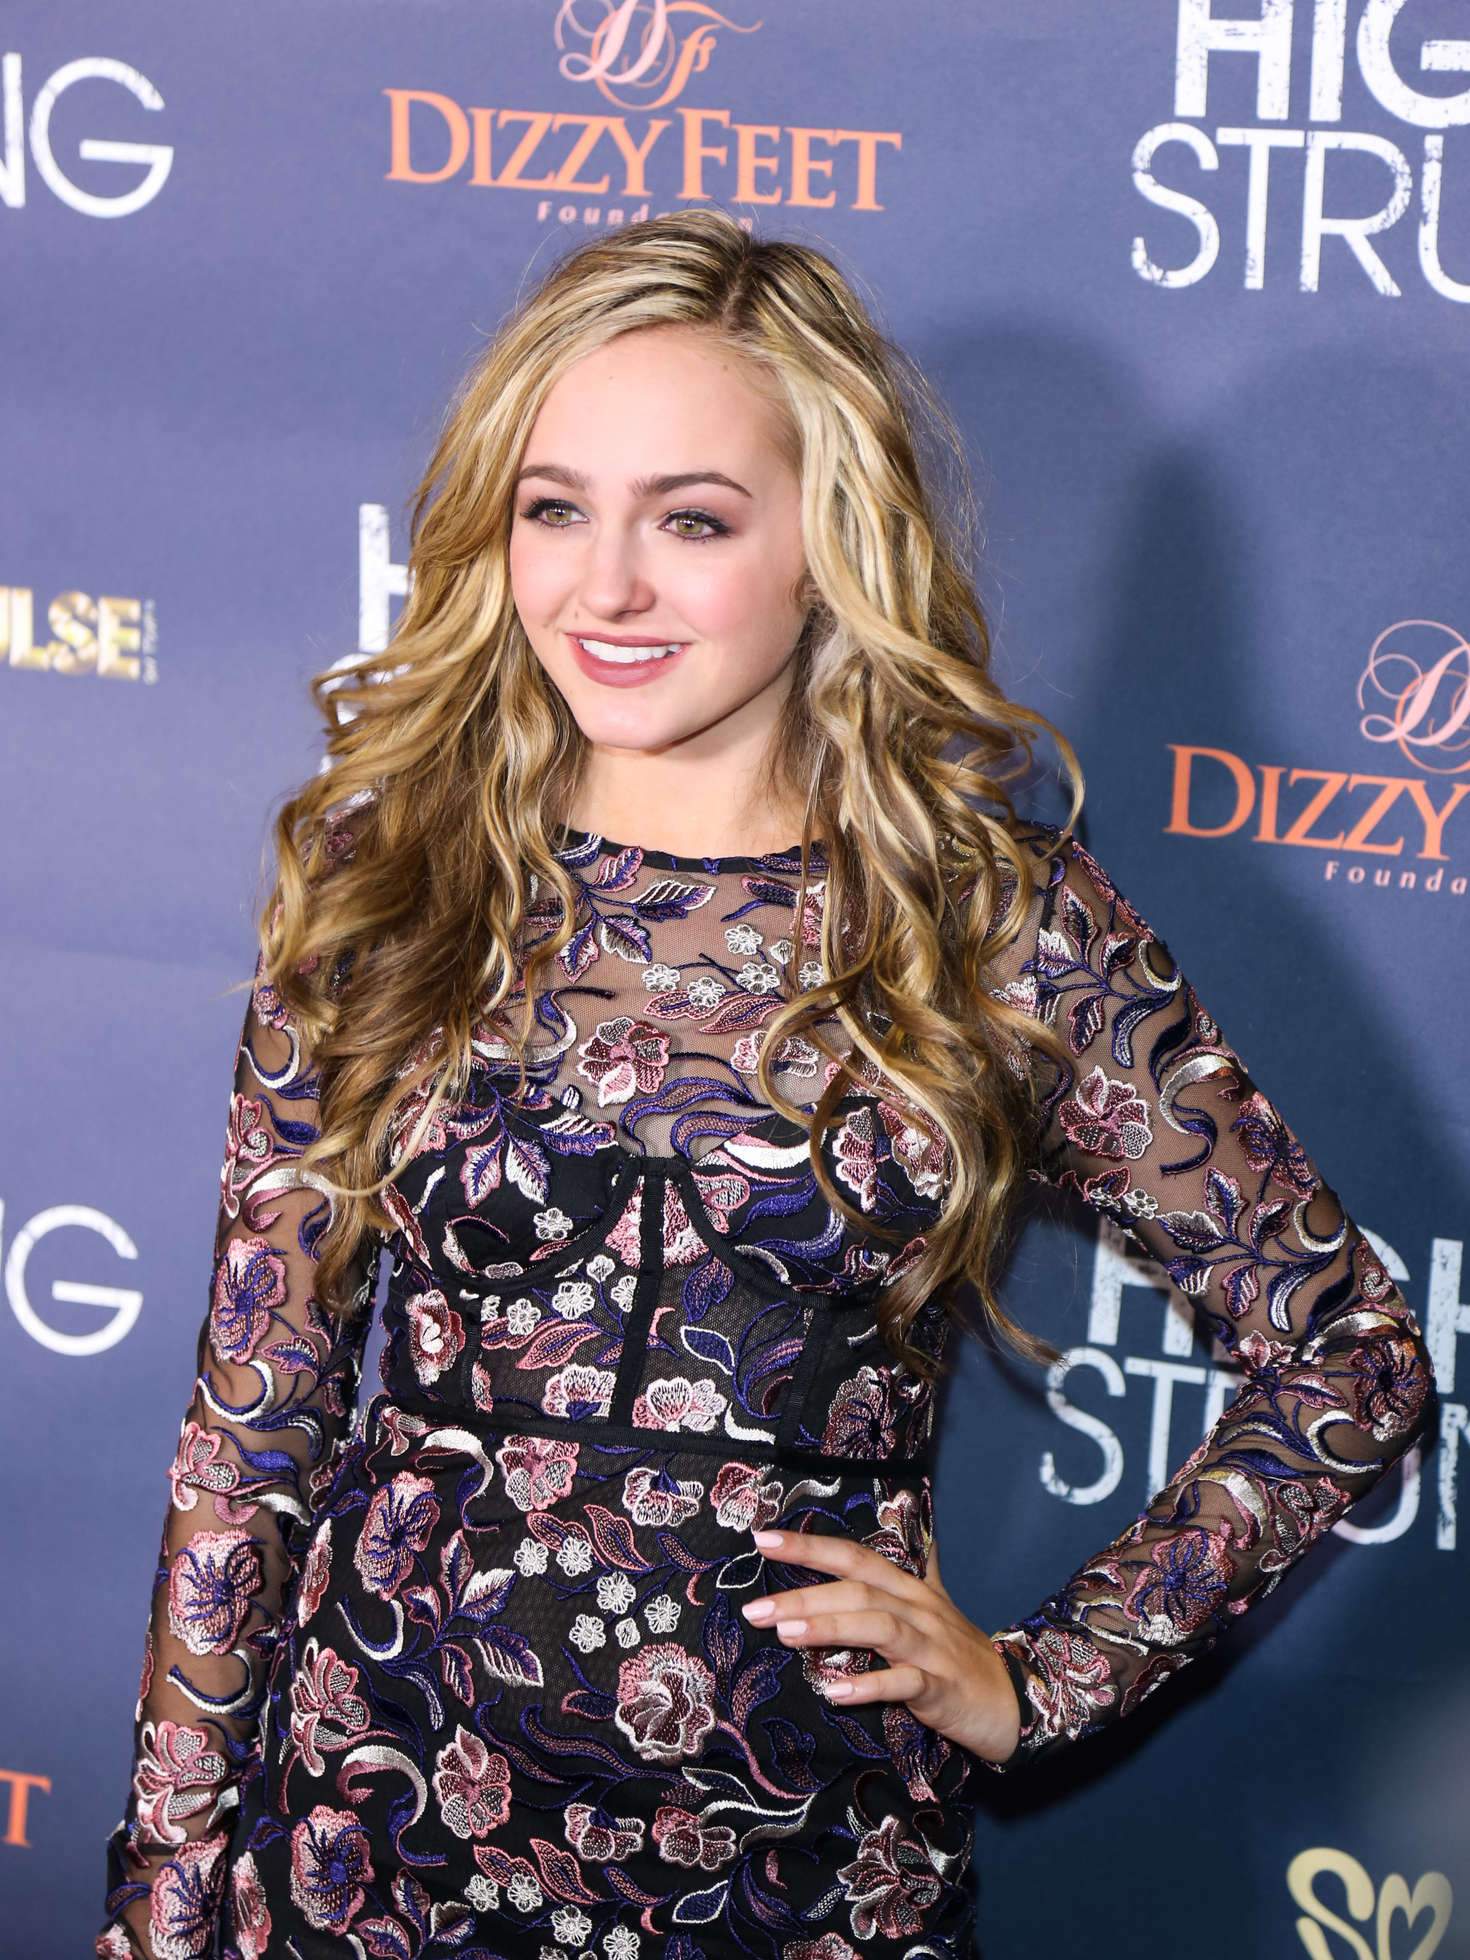 Sophie Reynolds High Strung Premiere in Los Angeles